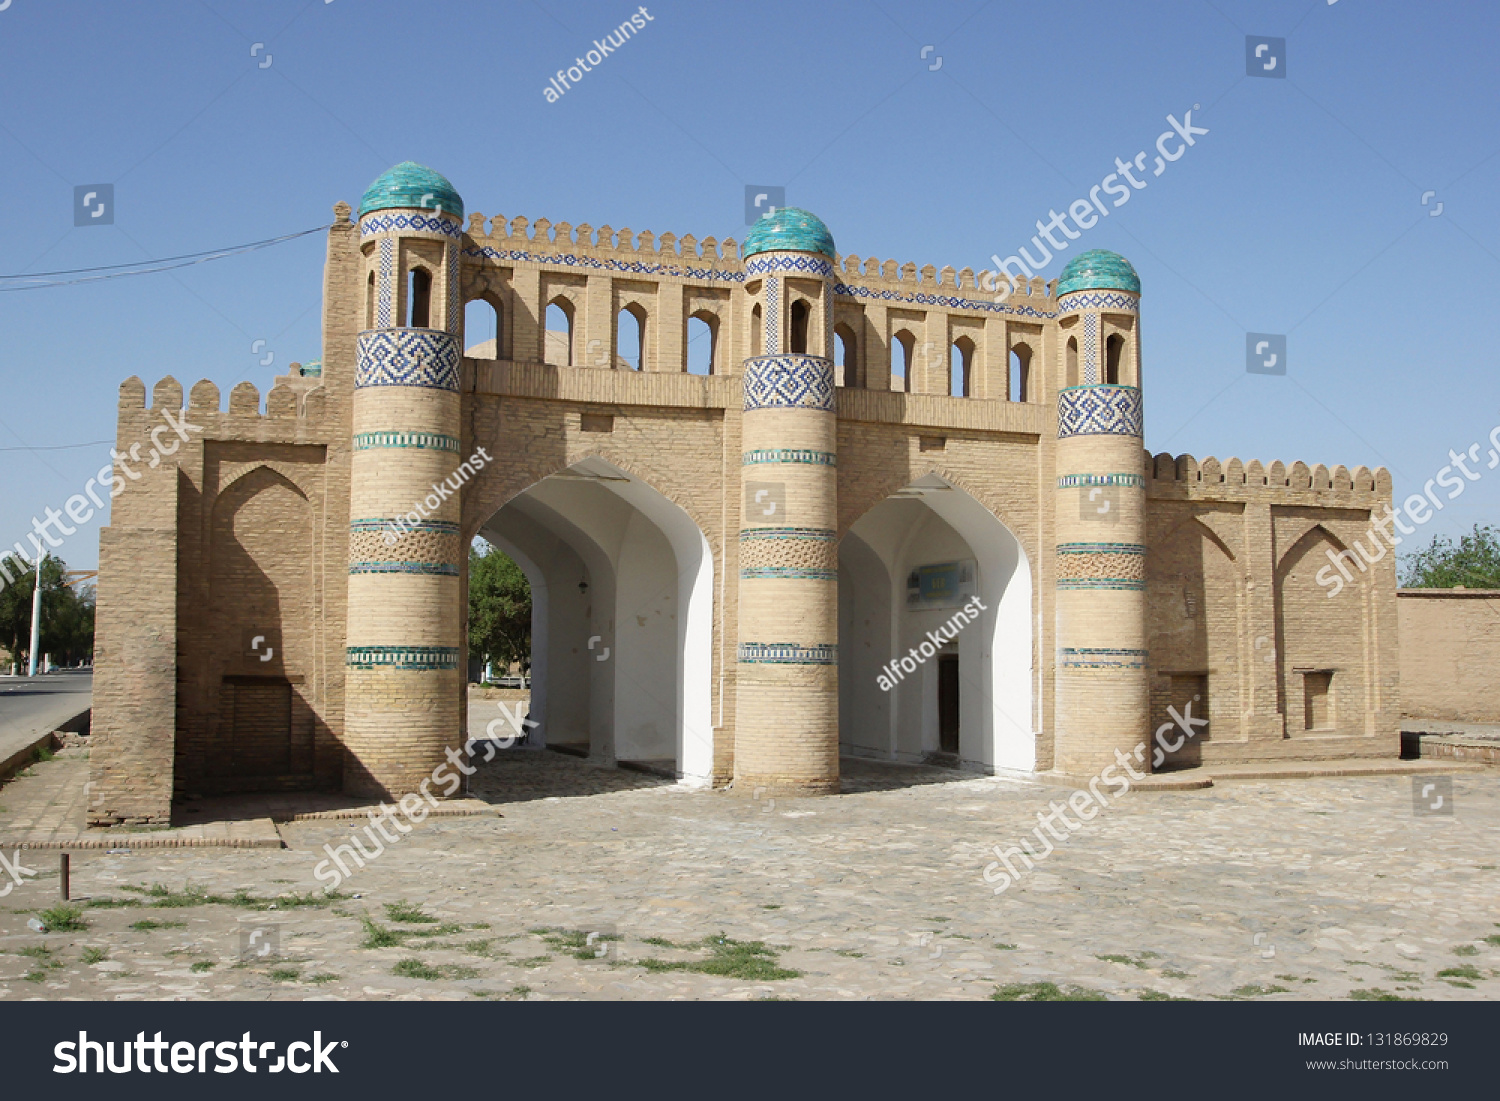 gate to the ancient city of khiva silk road uzbekistan central asia stock photo 131869829. Black Bedroom Furniture Sets. Home Design Ideas